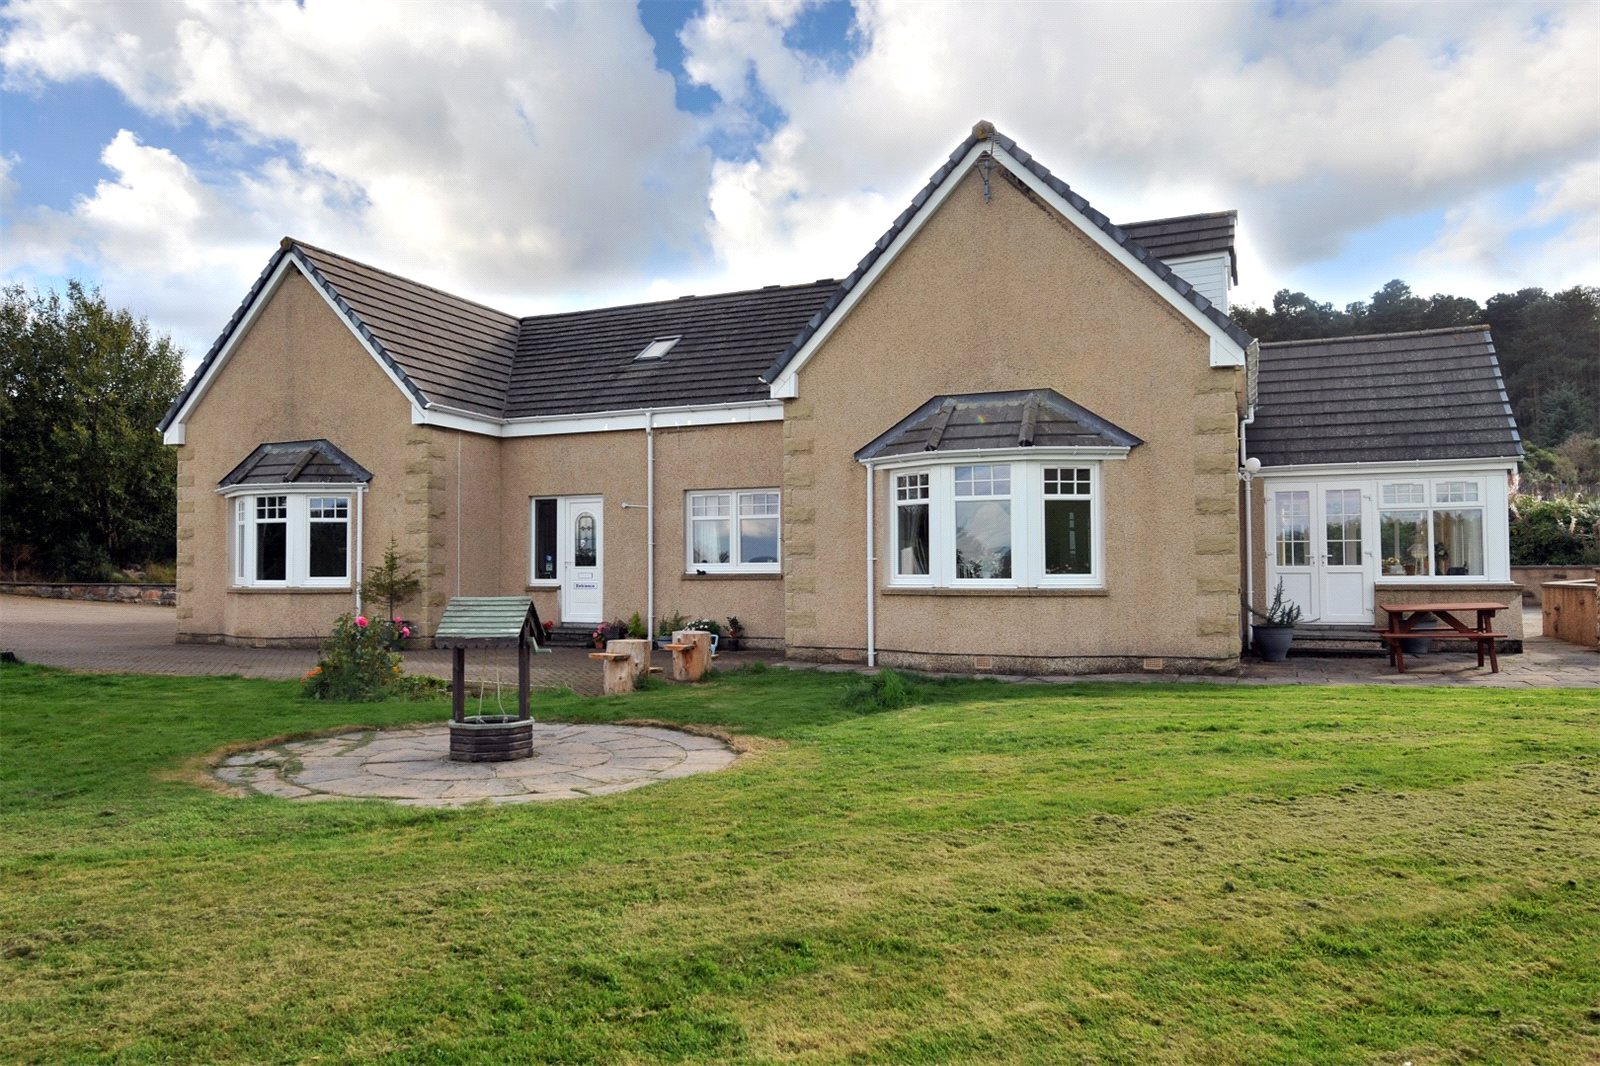 5 Bedrooms Detached House for sale in The Gables, Lettoch, Dufftown, Keith, Moray, AB55